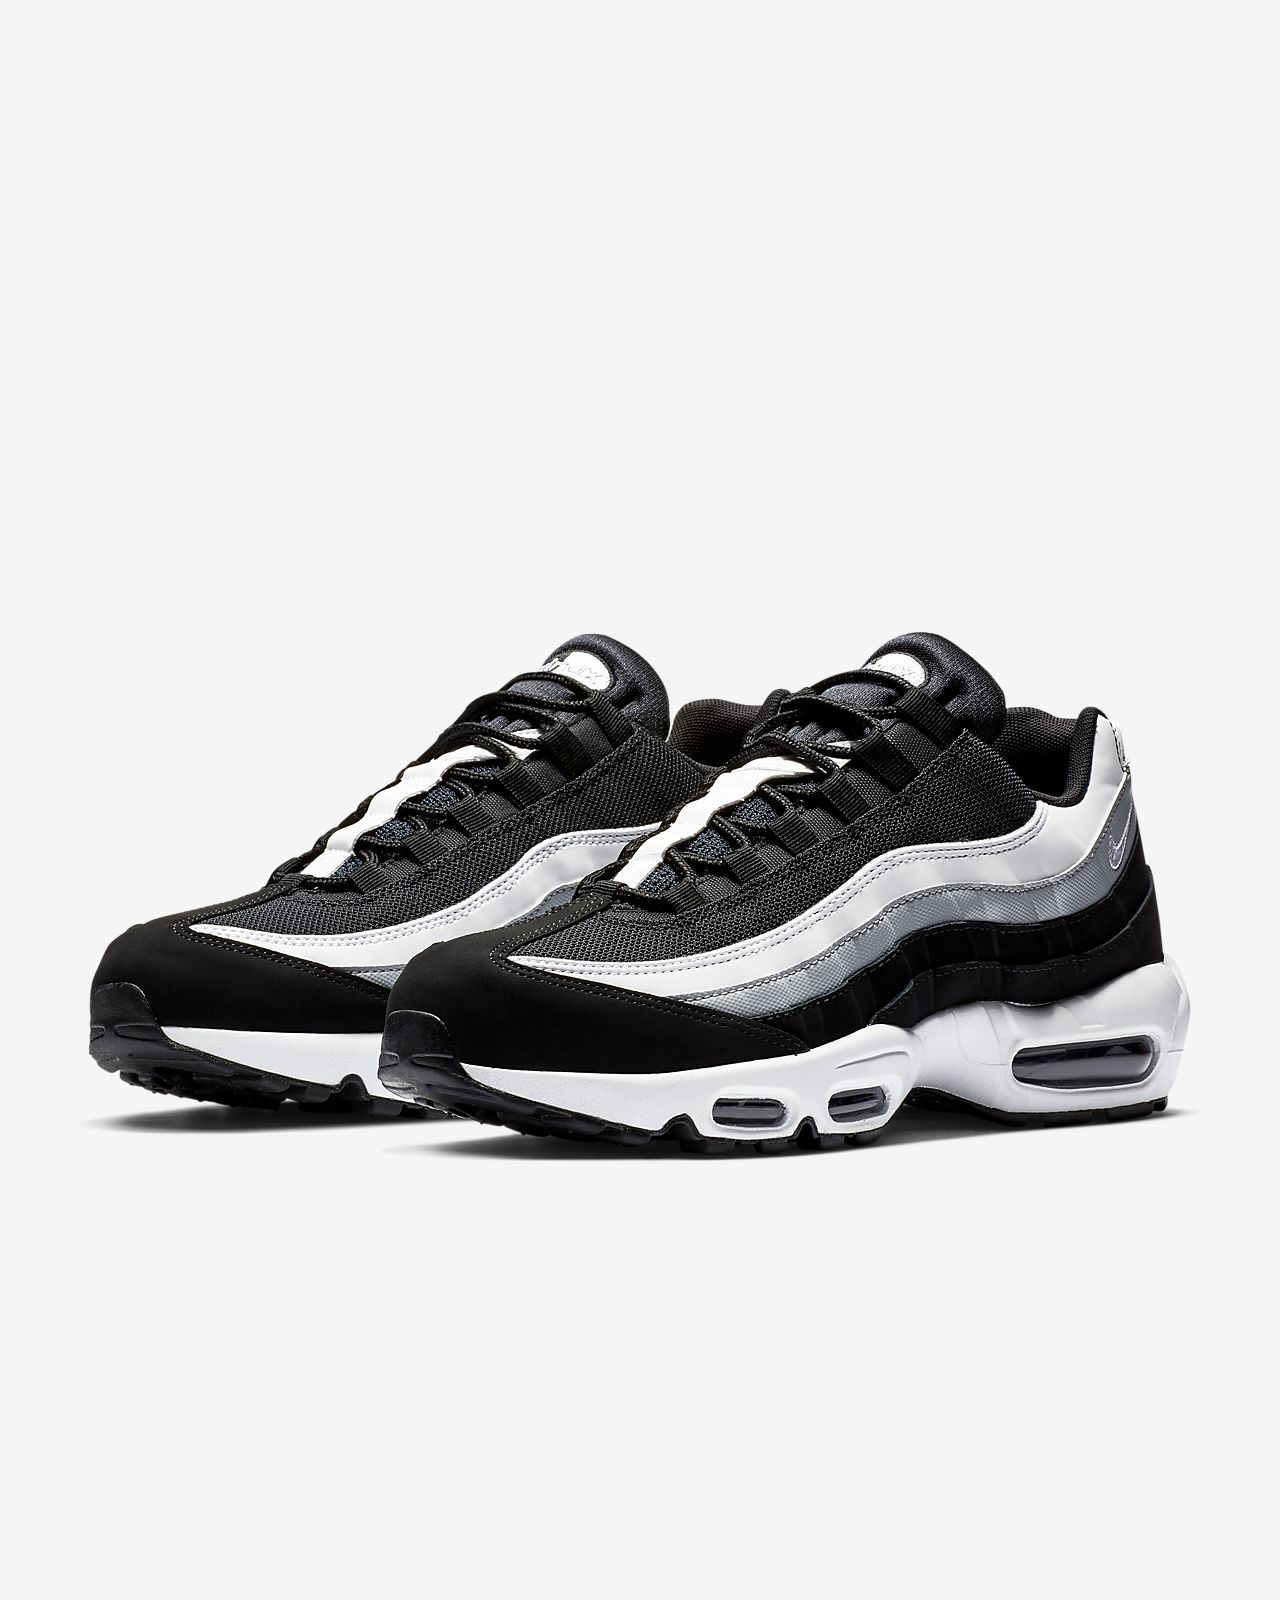 59080b86ea Nike Air Max 95 Essential Men's Shoe. Nike.com ID